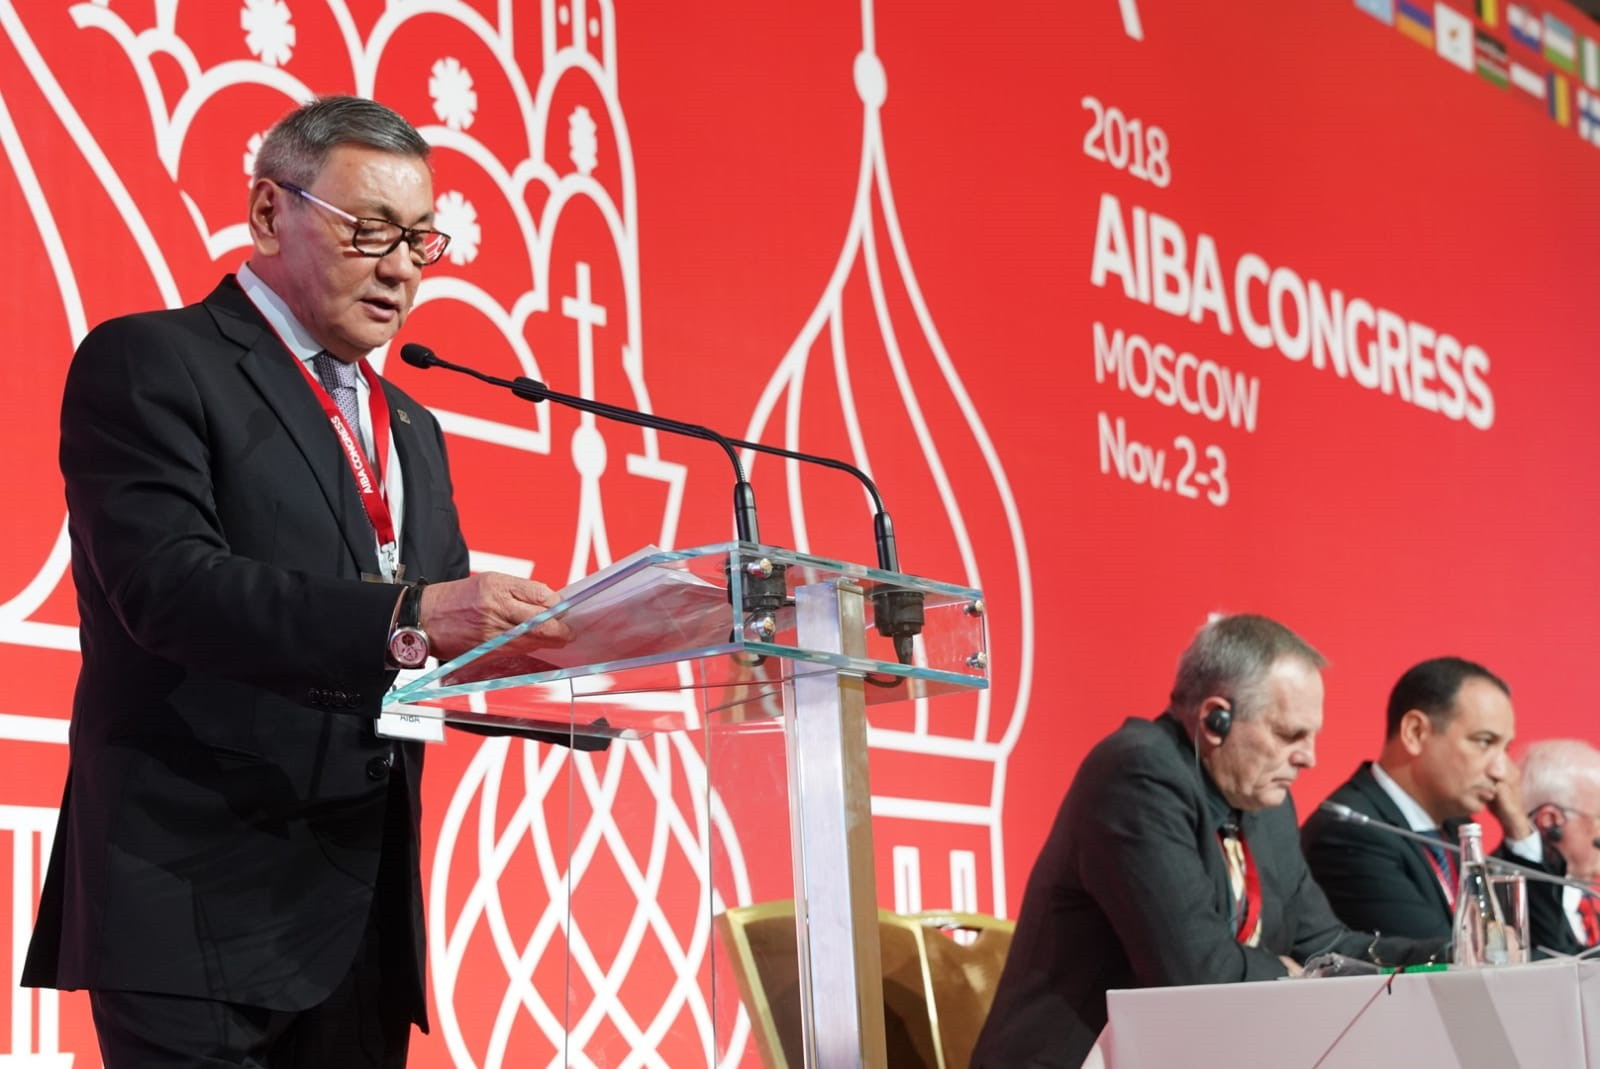 Exclusive: AIBA admit Presidential election to replace Rakhimov could be postponed as crisis continues